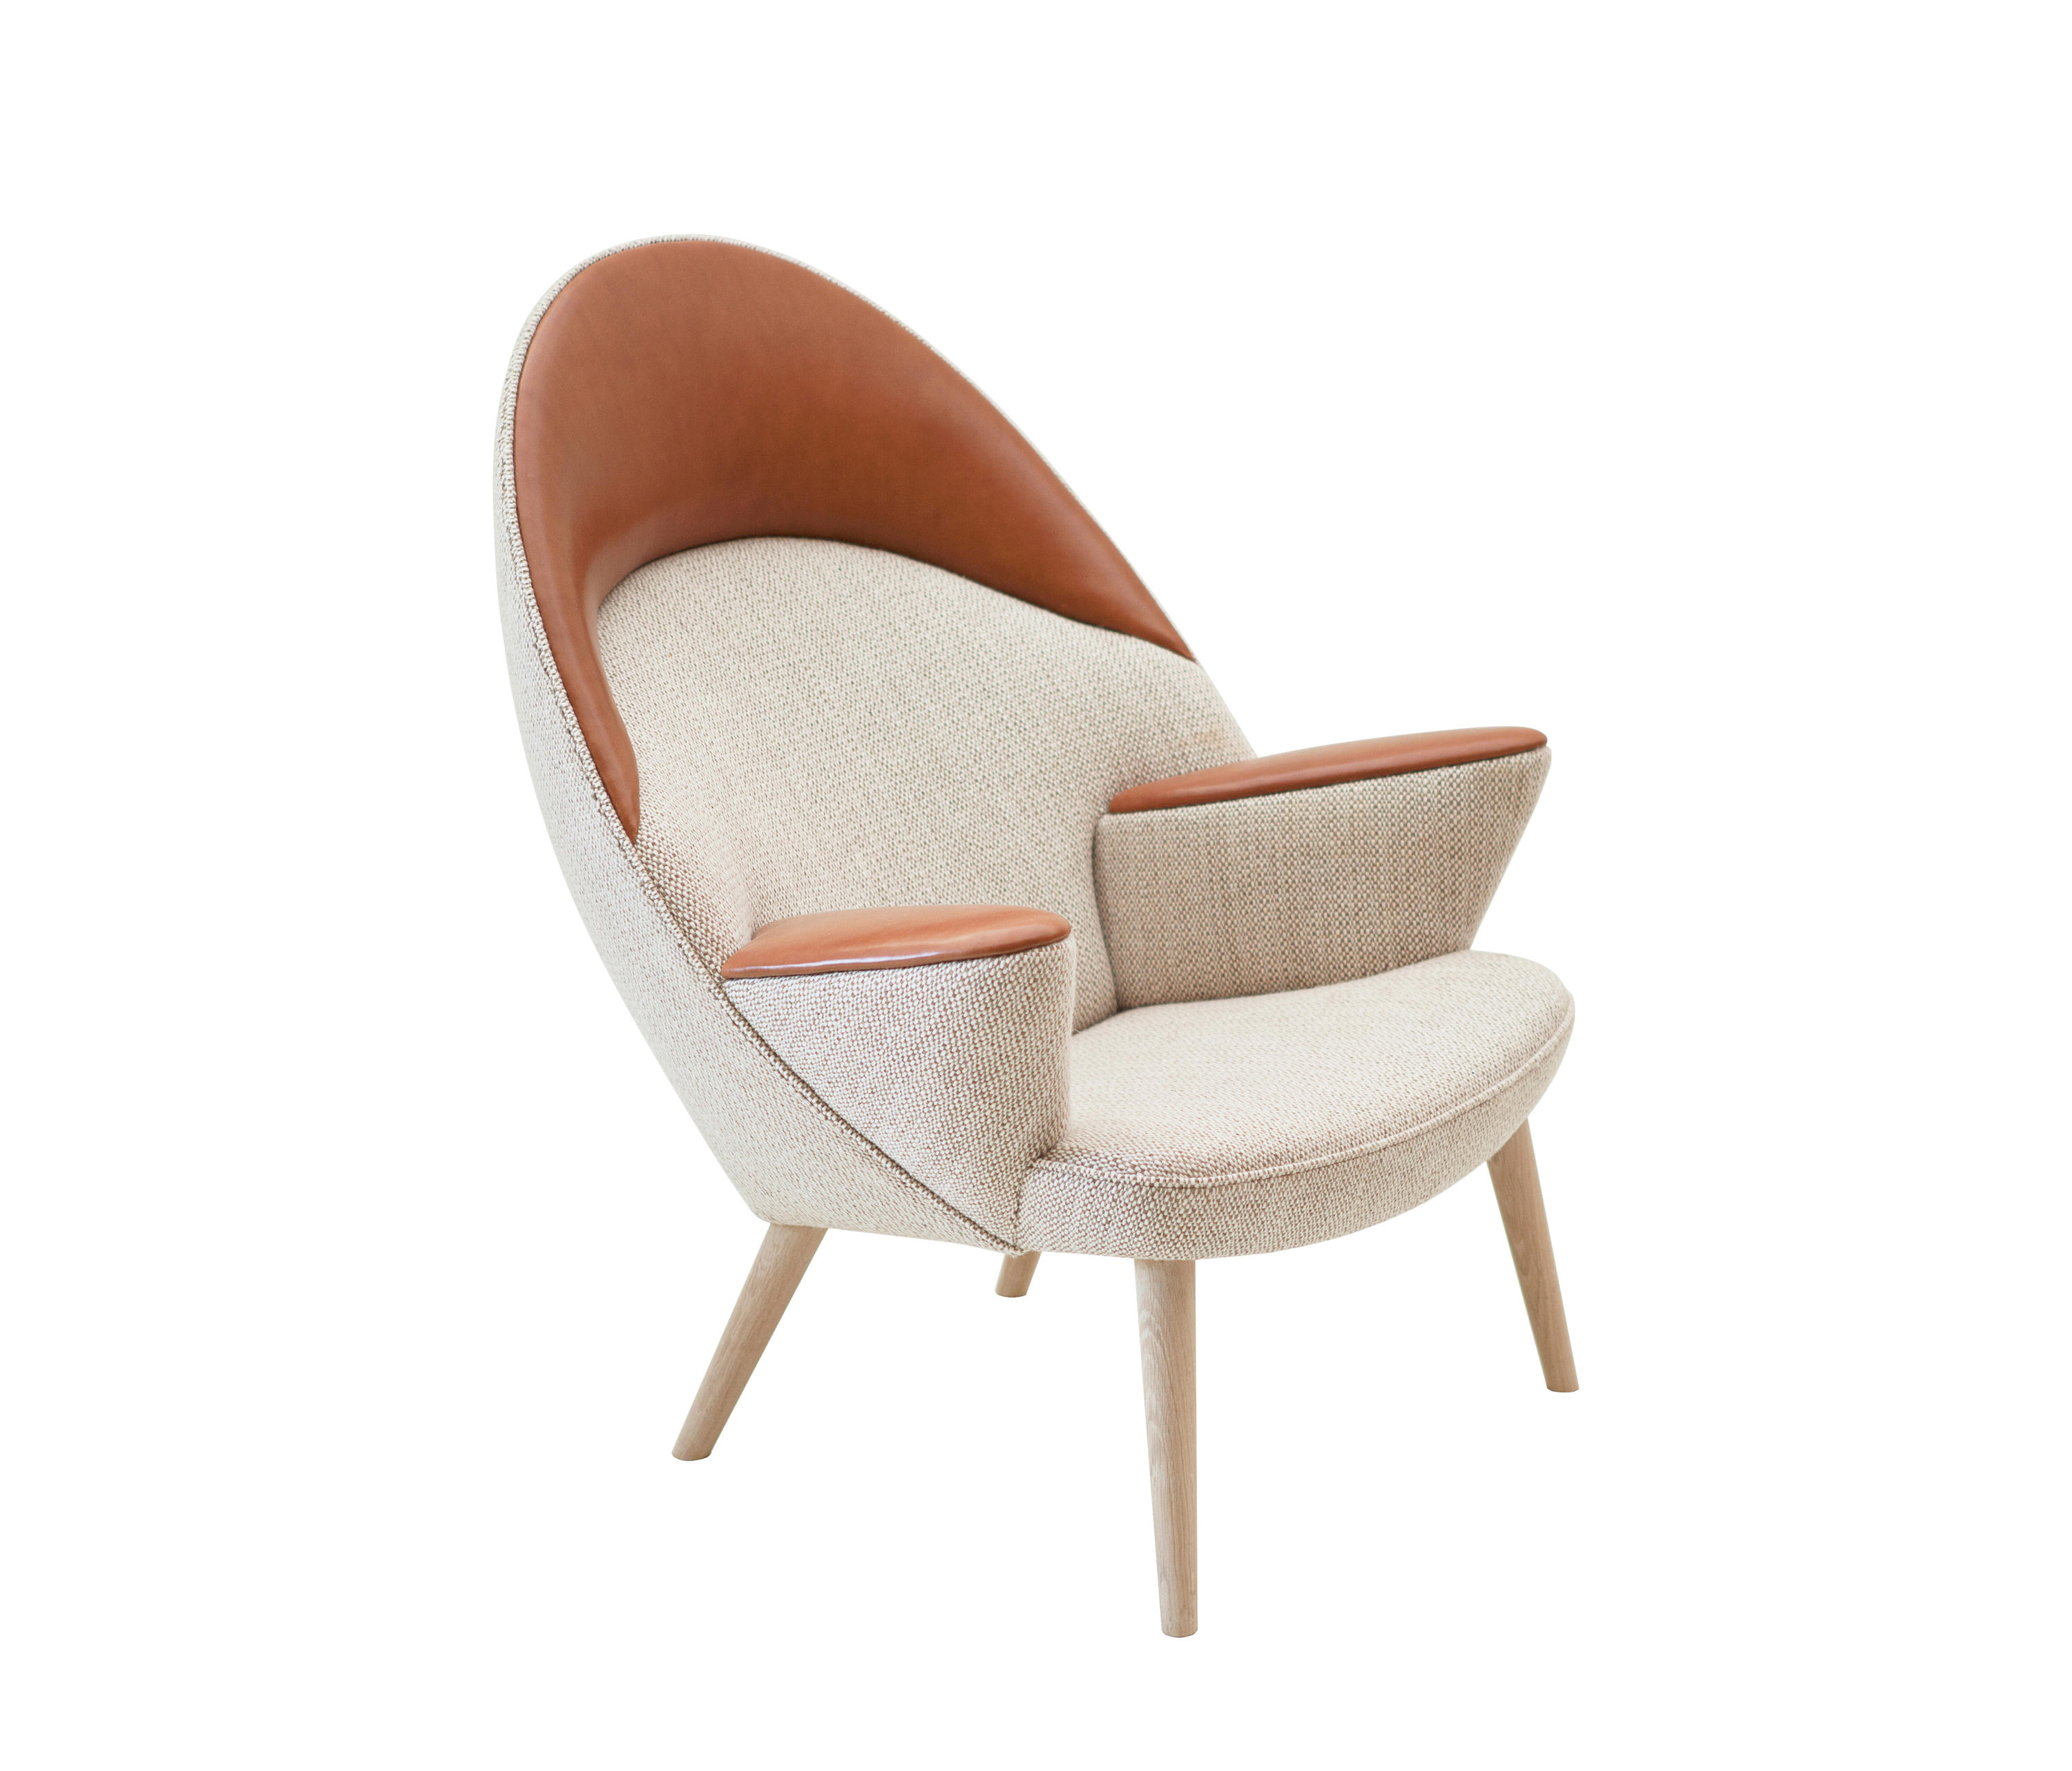 Beau Pp521 | Upholstered Peacock Chair By PP Møbler | Armchairs ...